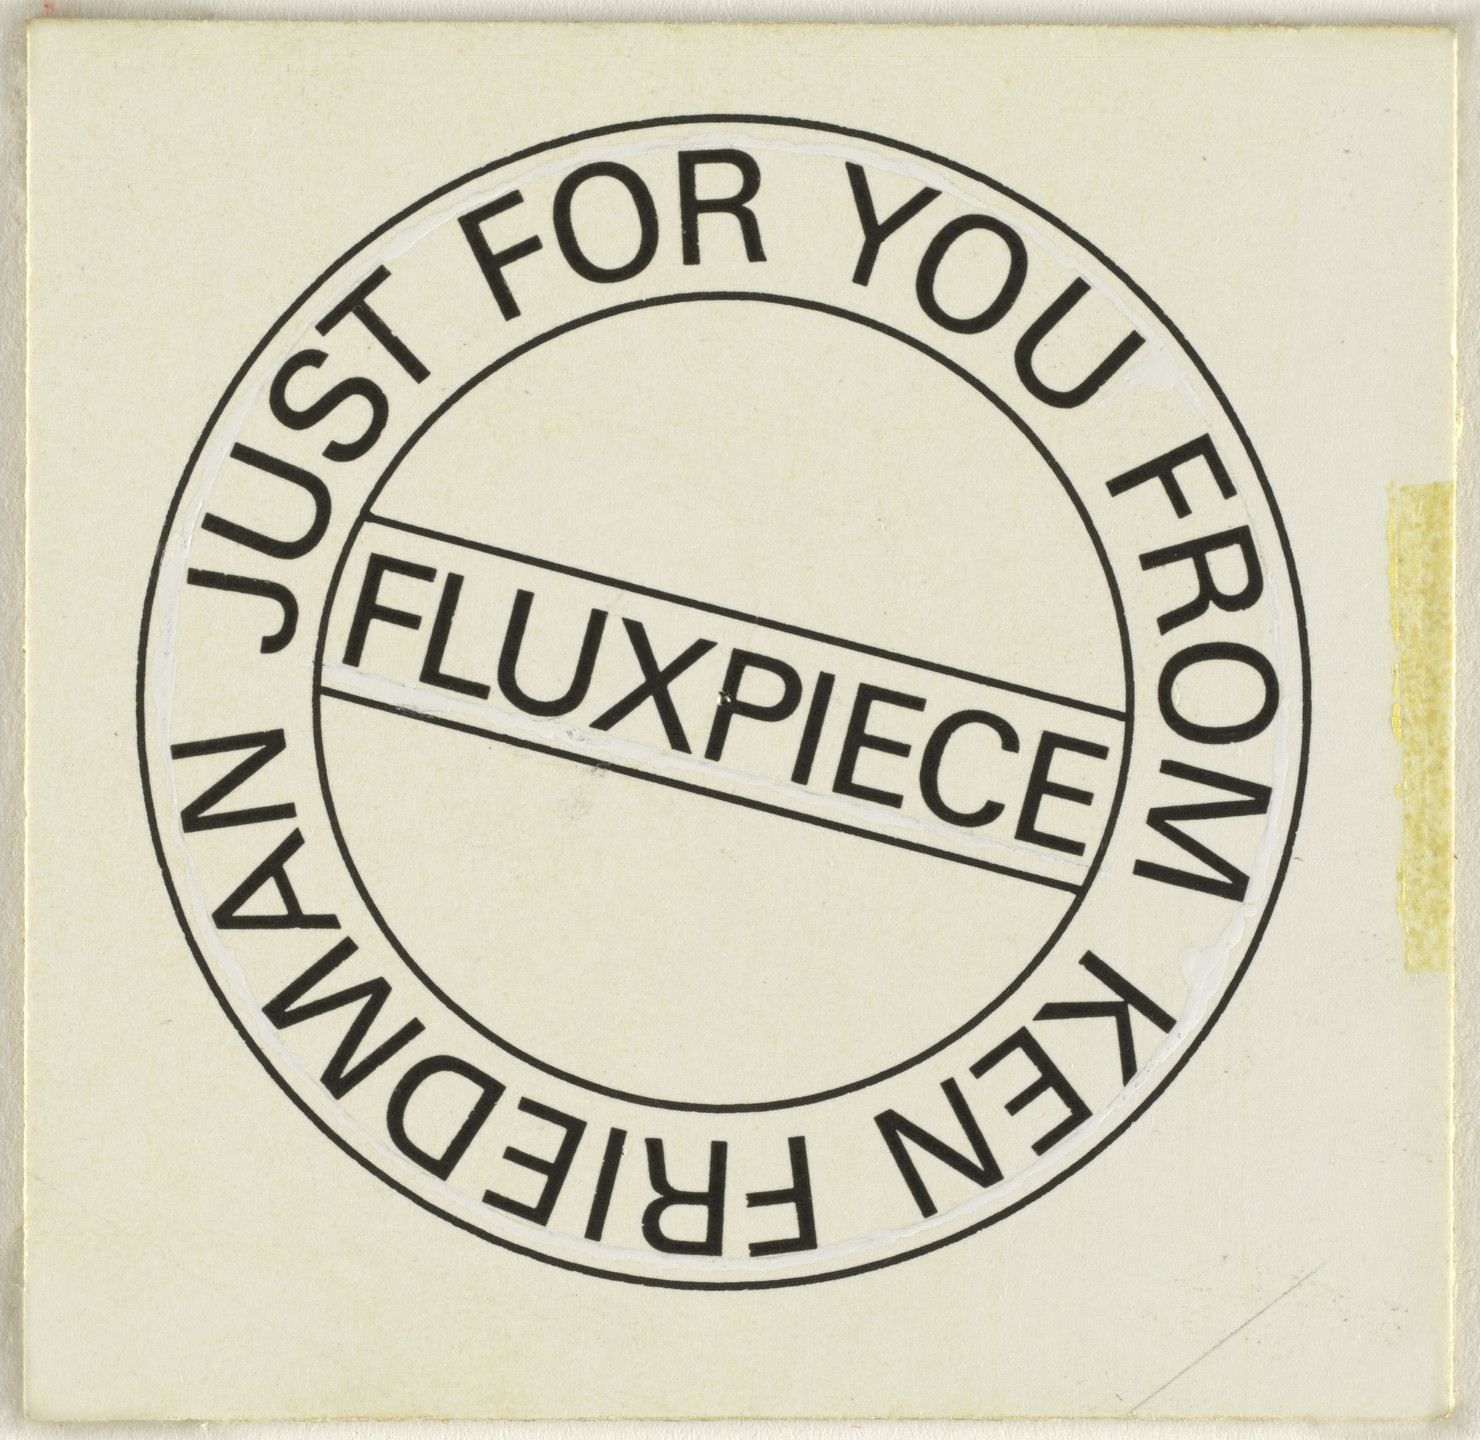 George Maciunas, Ken Friedman. Mechanical for Just for You. c. 1967